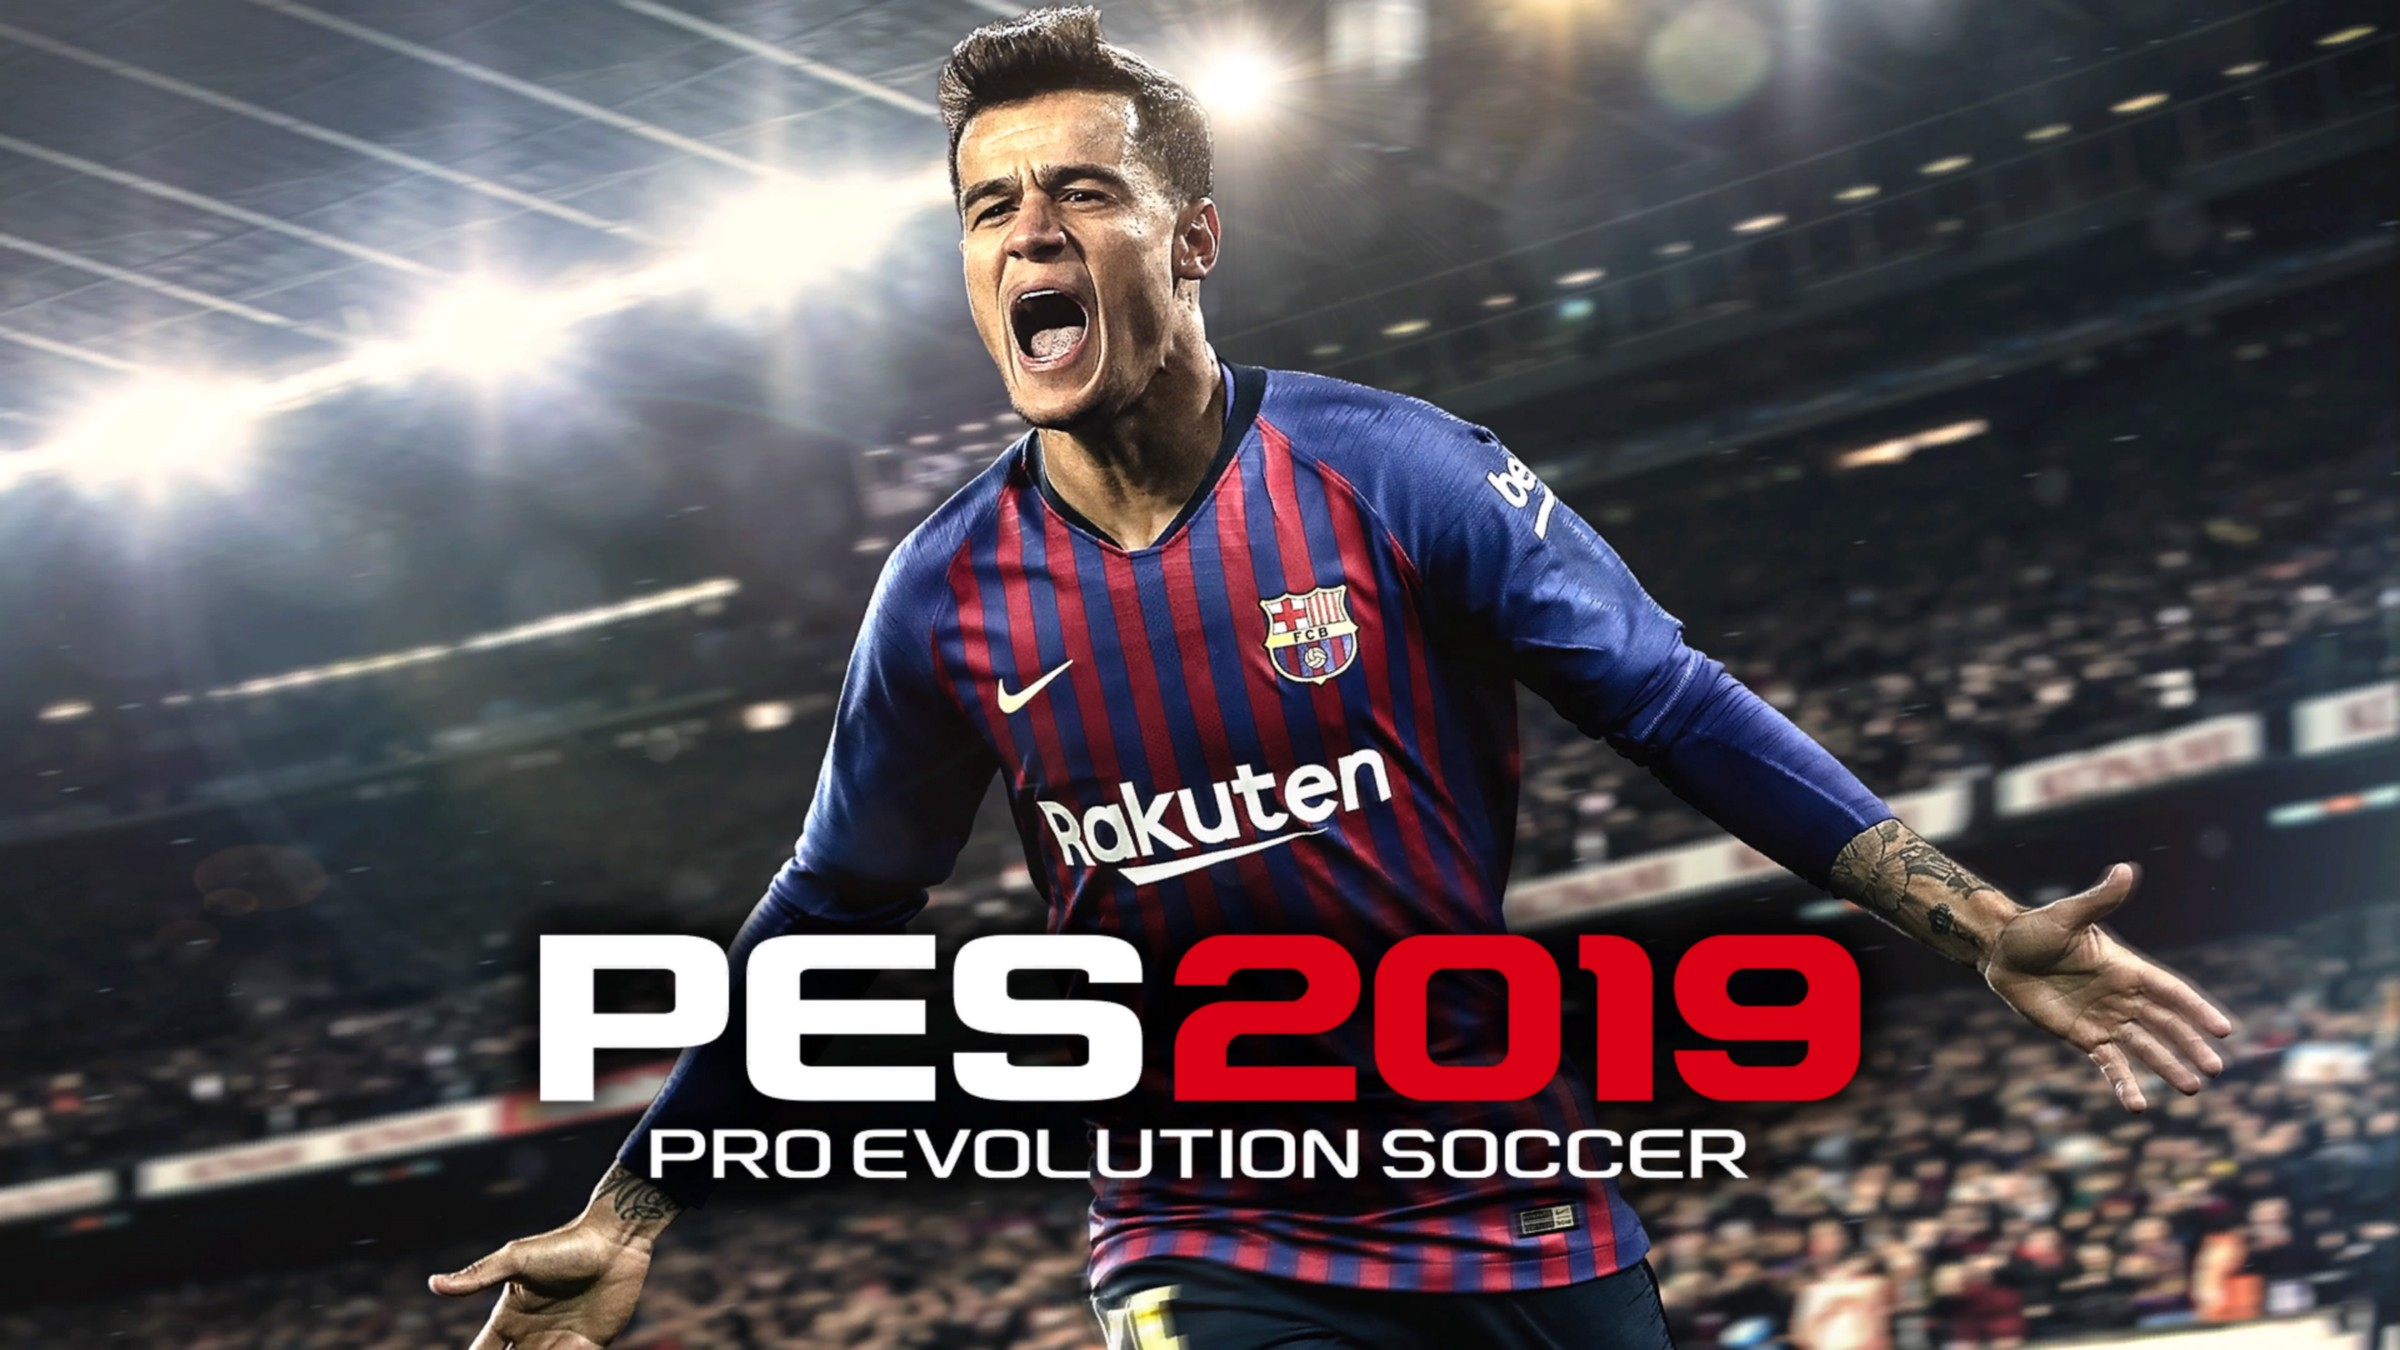 PES 2019 Wallpaper & PES 2019 Theme HD